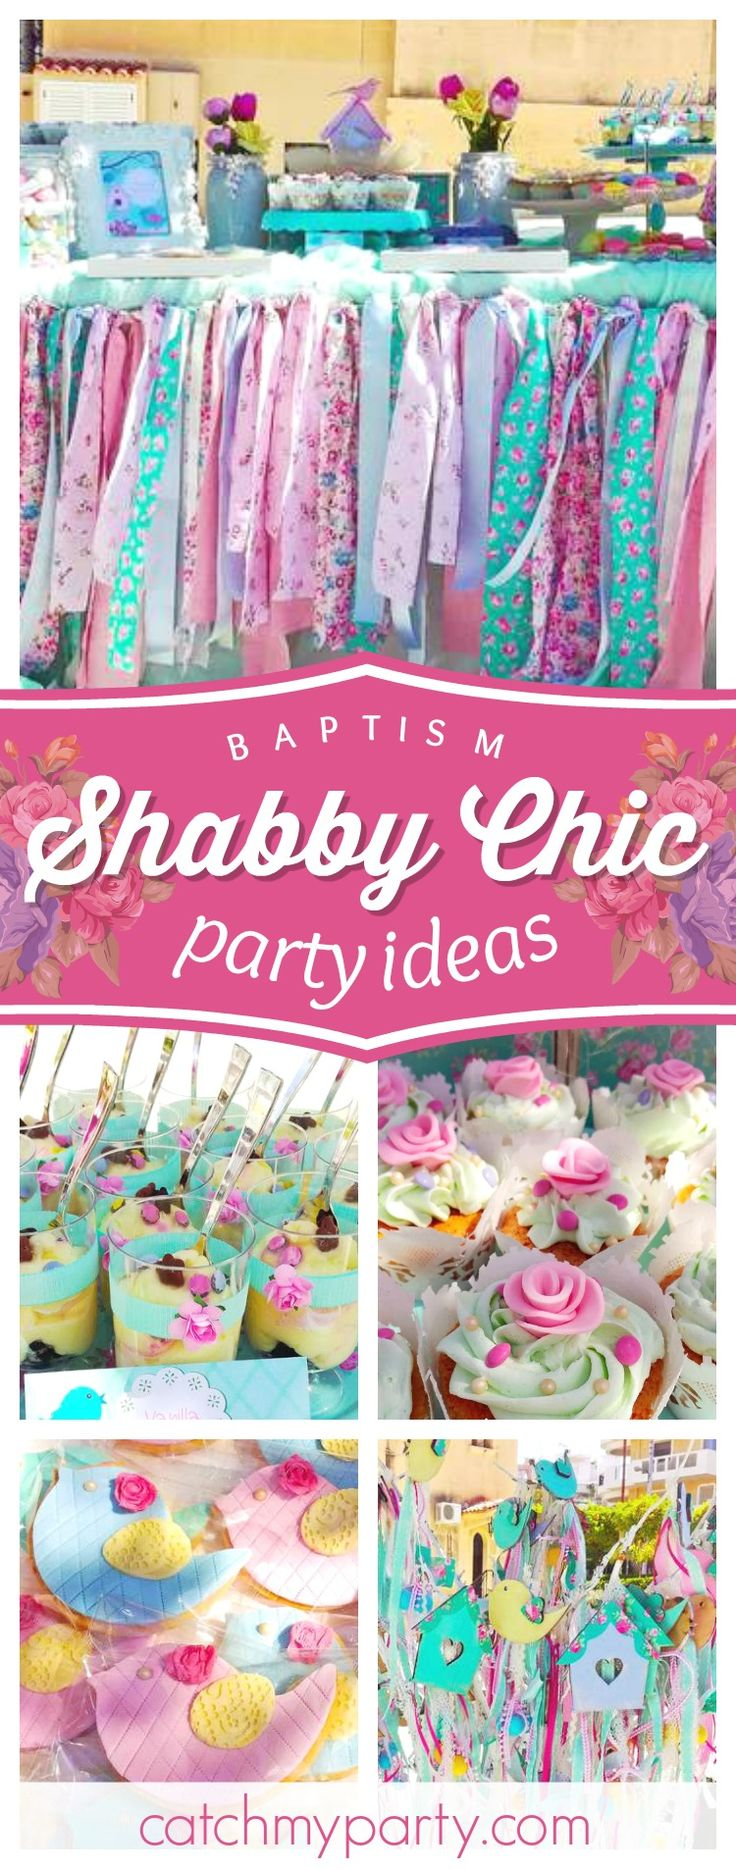 Don't miss this pretty little bird themed shabby chic baptism! The cupcakes are gorgeous!! See more party ideas and share yours at CatchMyParty.com #partyideas #shabbychic #bird #baptism #christening